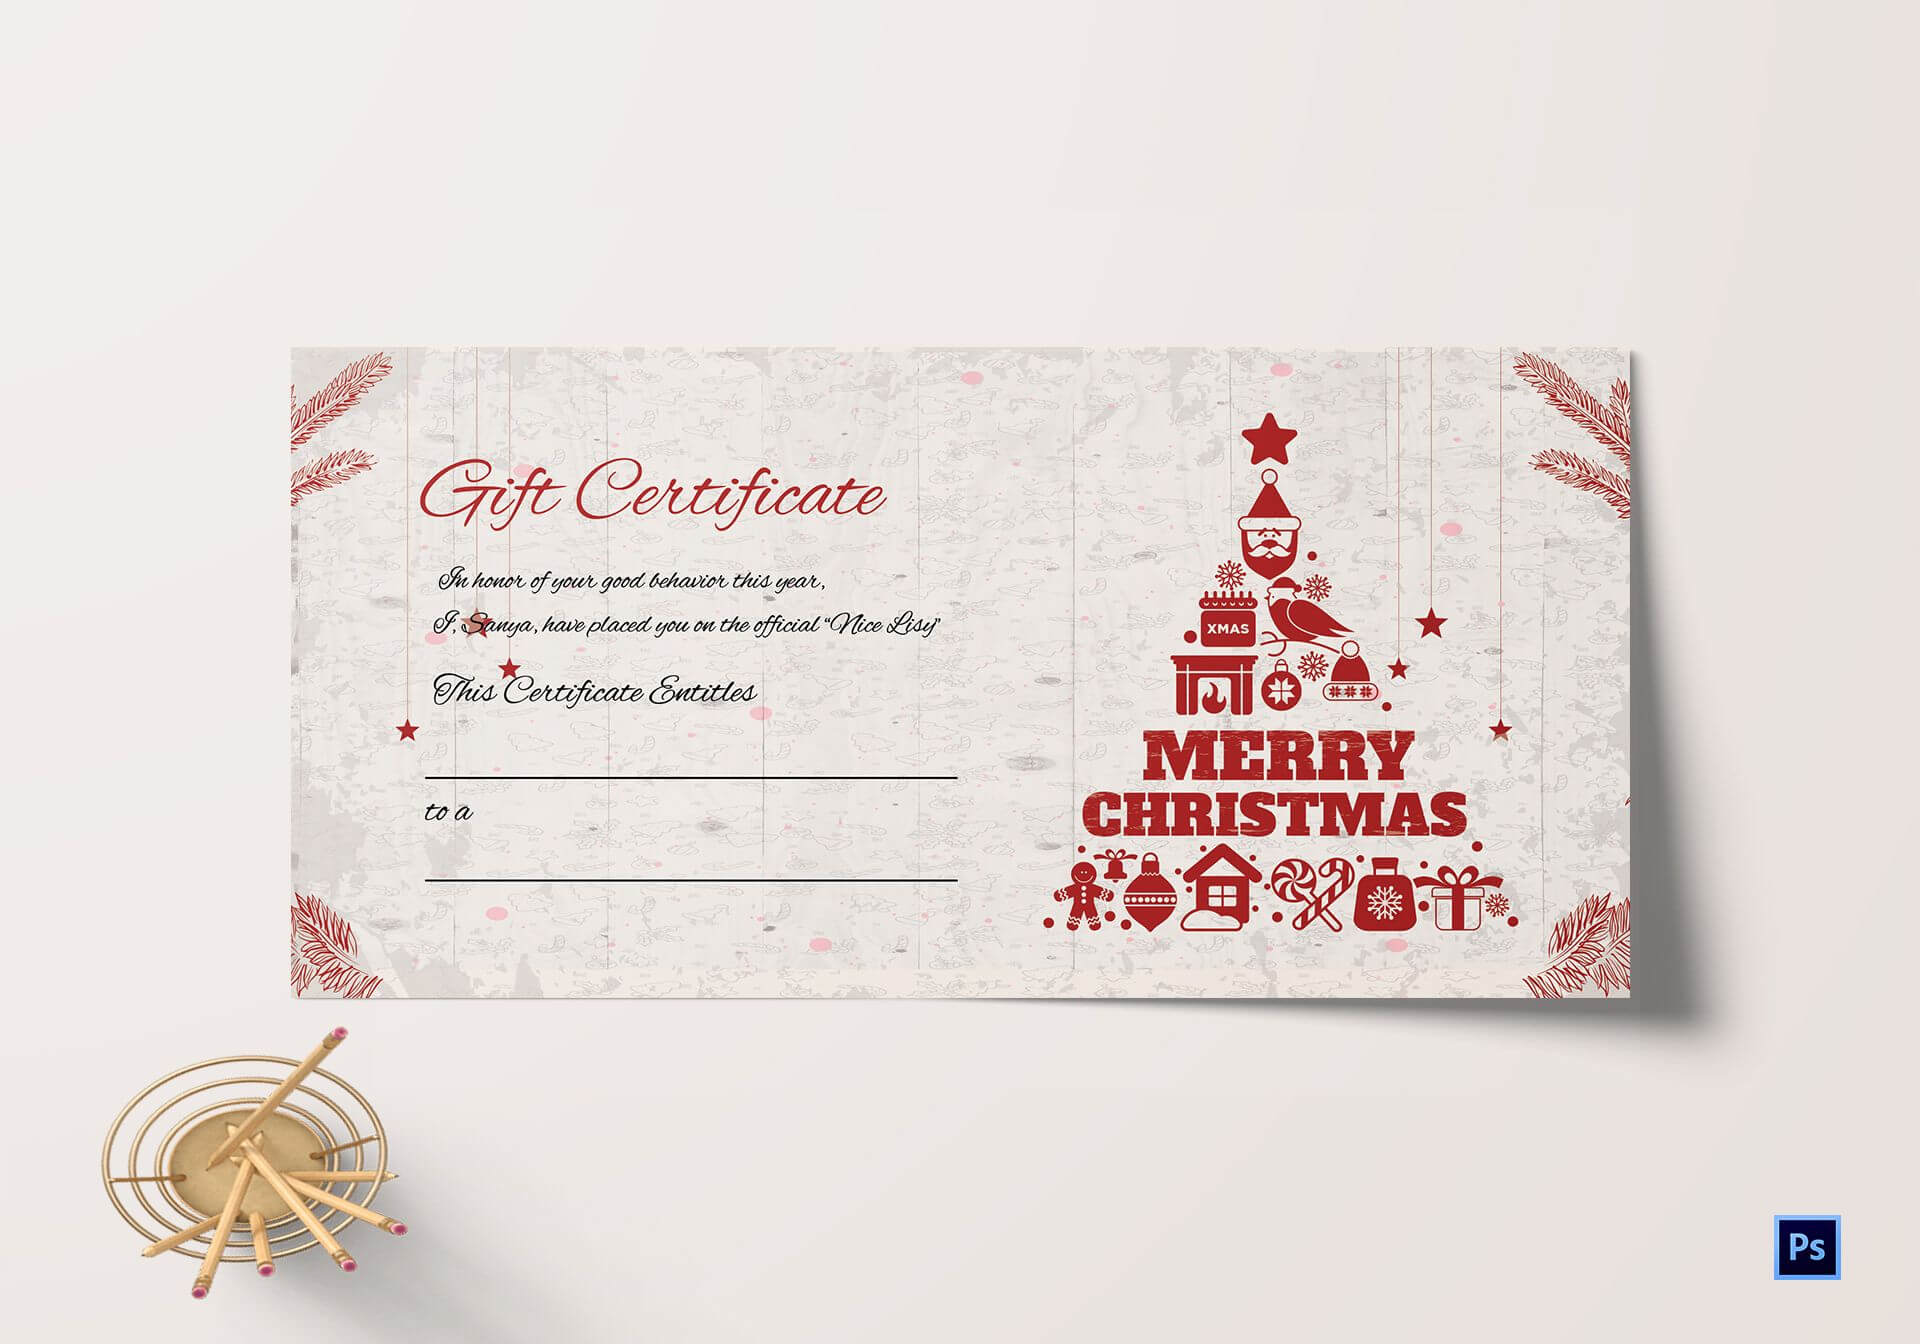 Merry Christmas Gift Certificate Within Merry Christmas Gift Certificate Templates